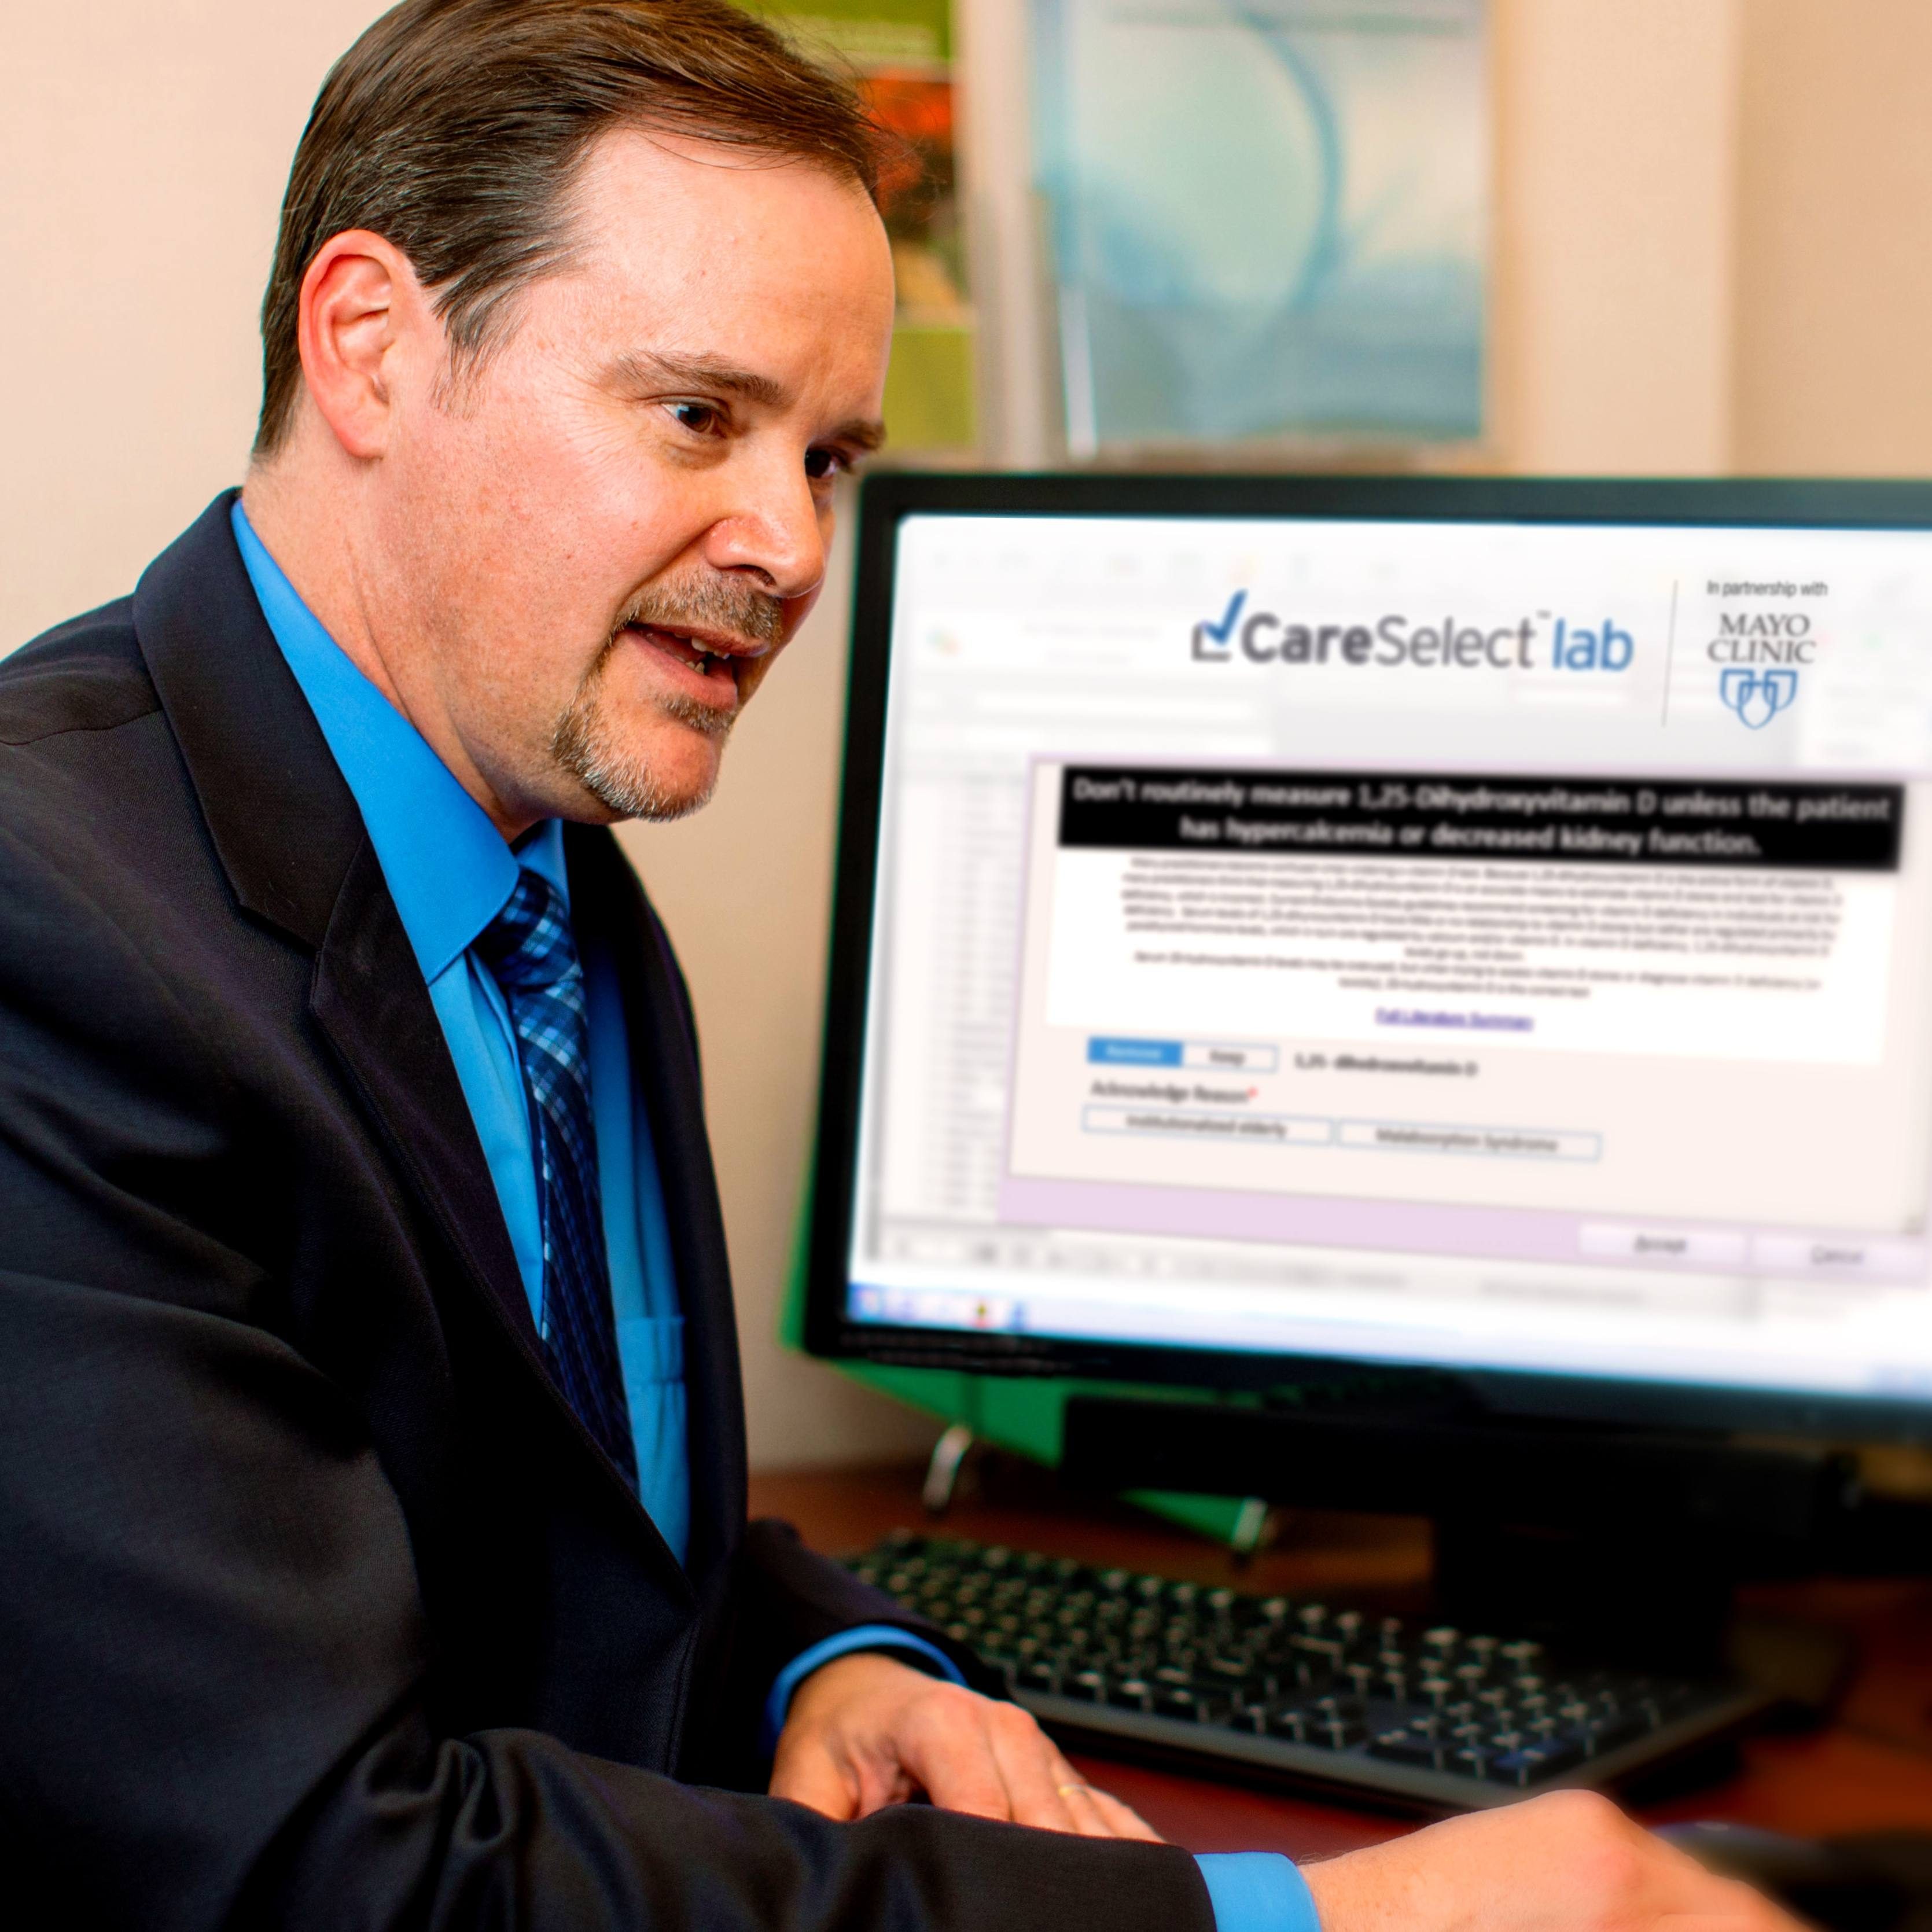 Physician working with patient using CareSelect Lab tool